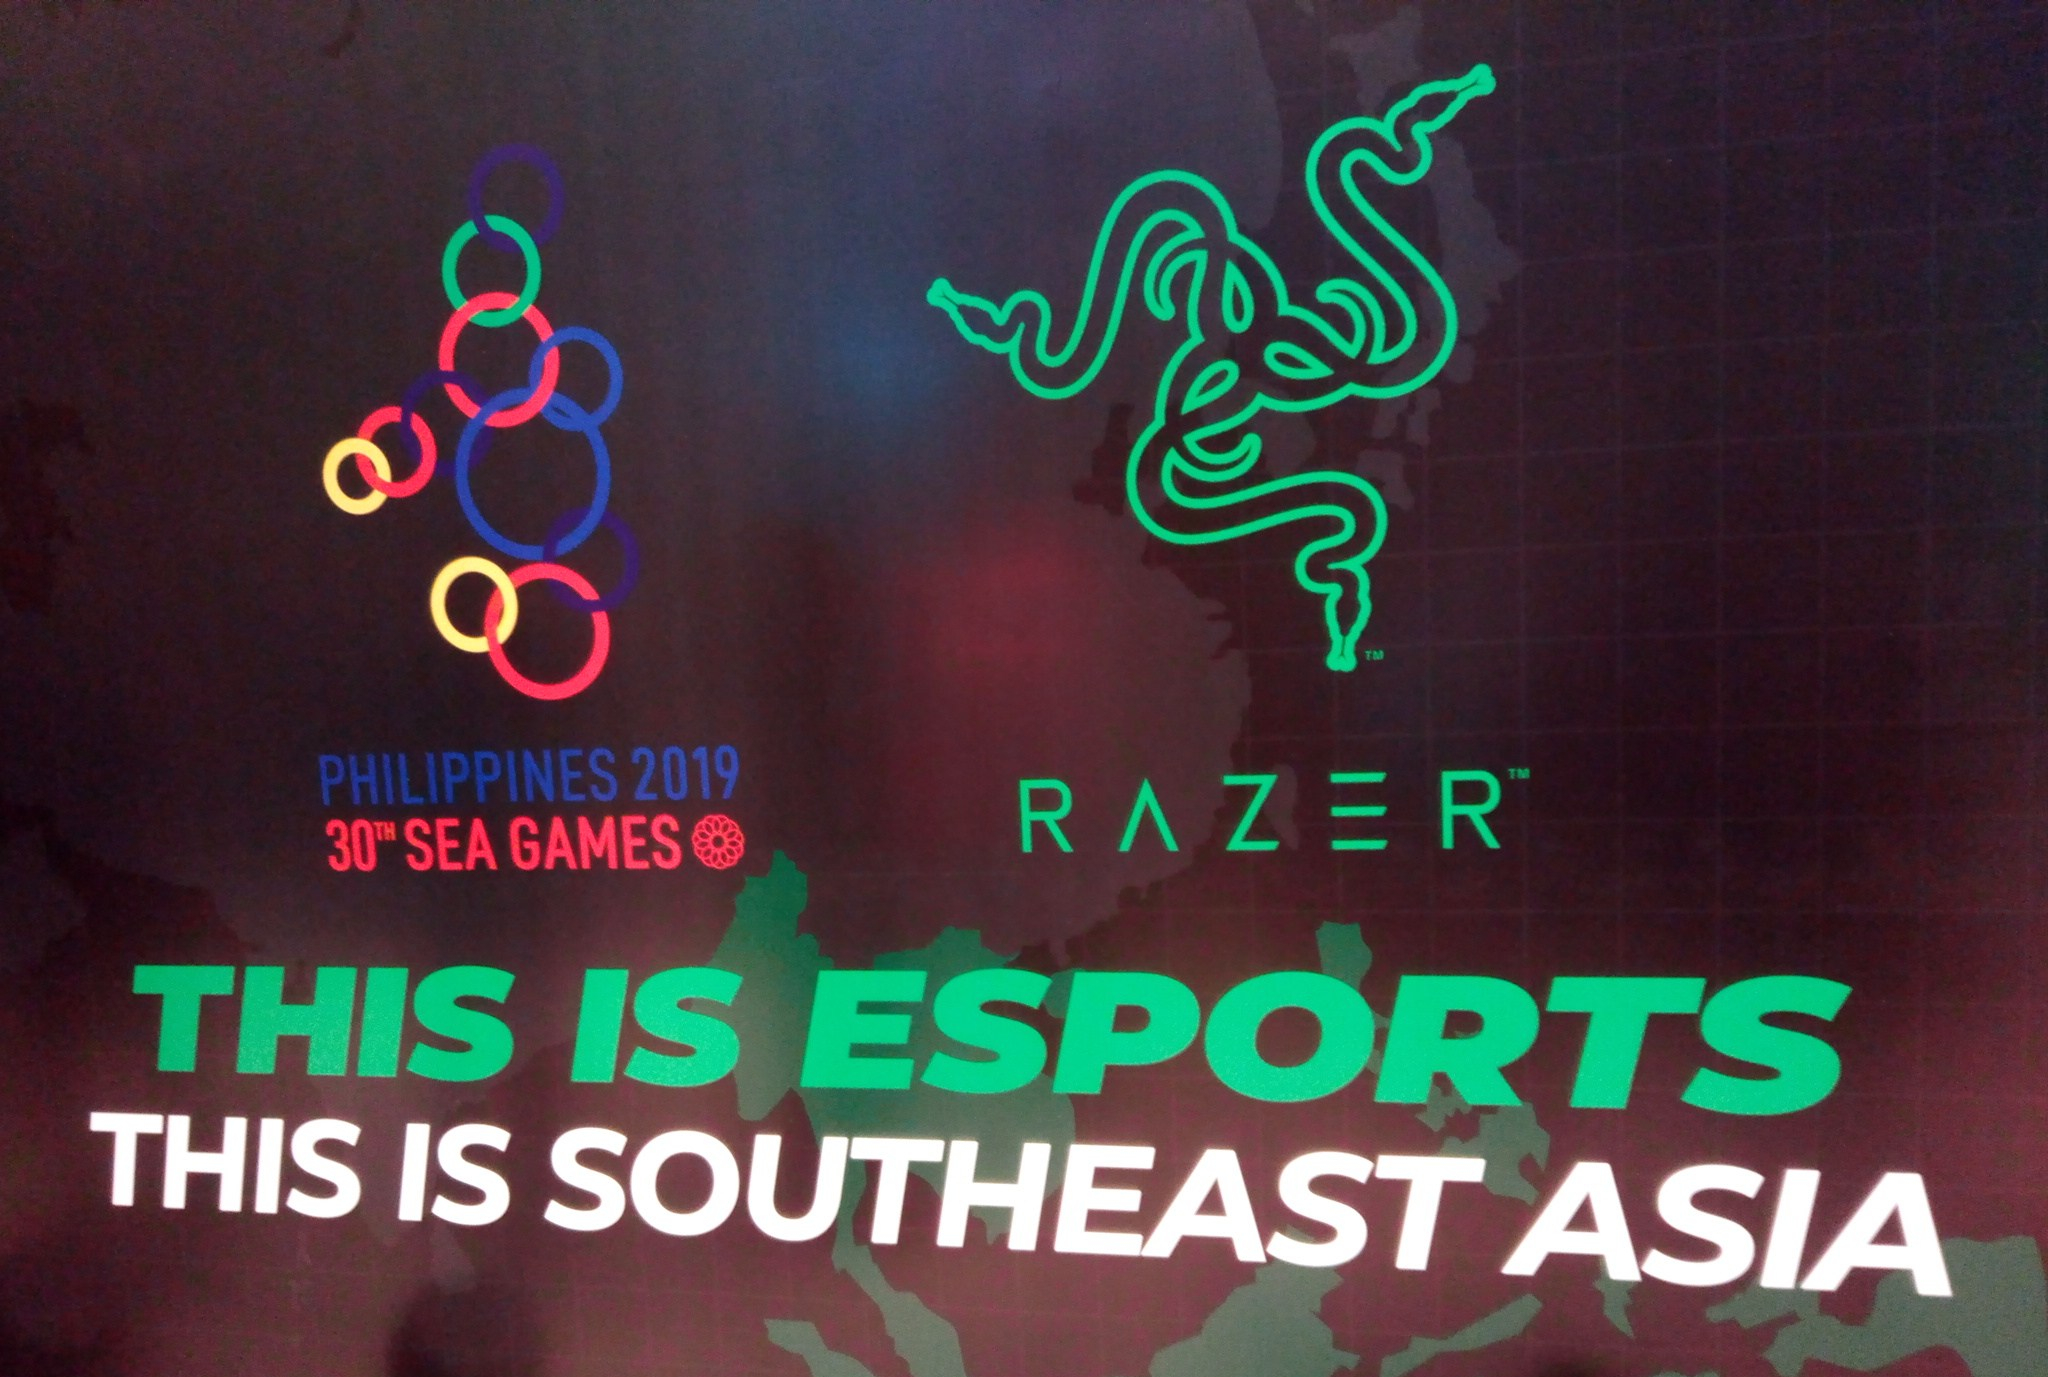 eSports to feature in 2019 SEA Games as medal sport; Razer official partner